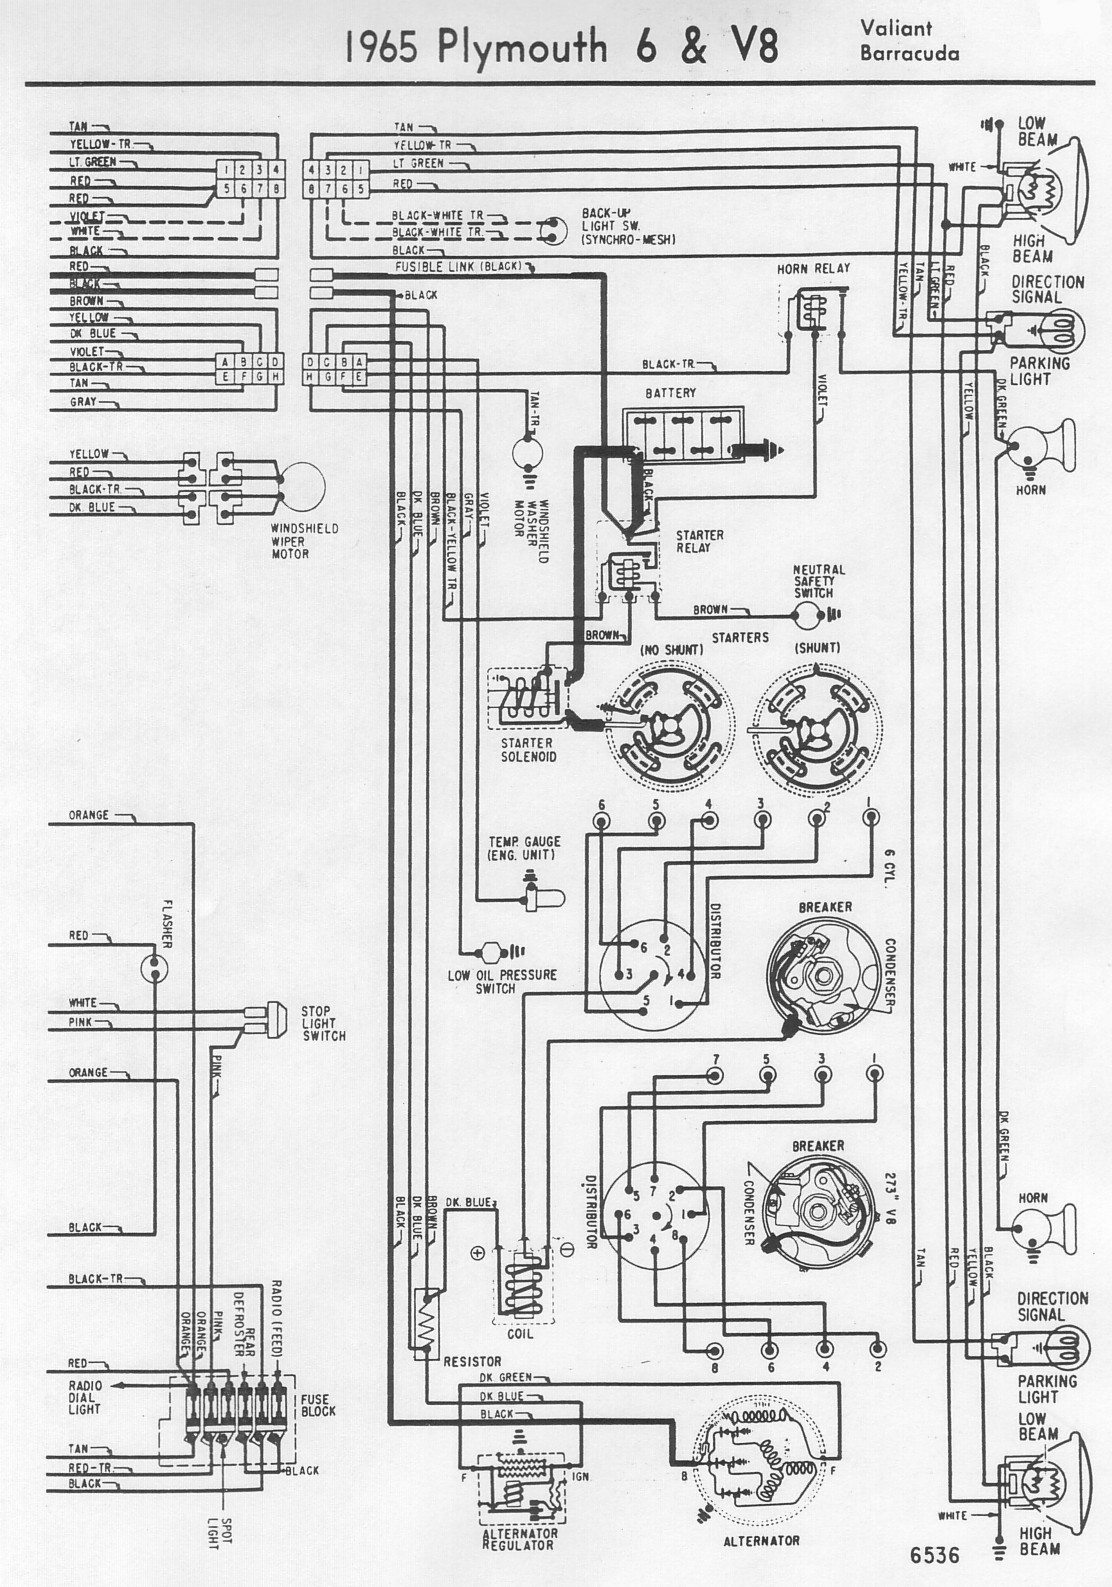 65ValiantBarracudaB wiring diagrams plymouth wiring diagrams at bayanpartner.co